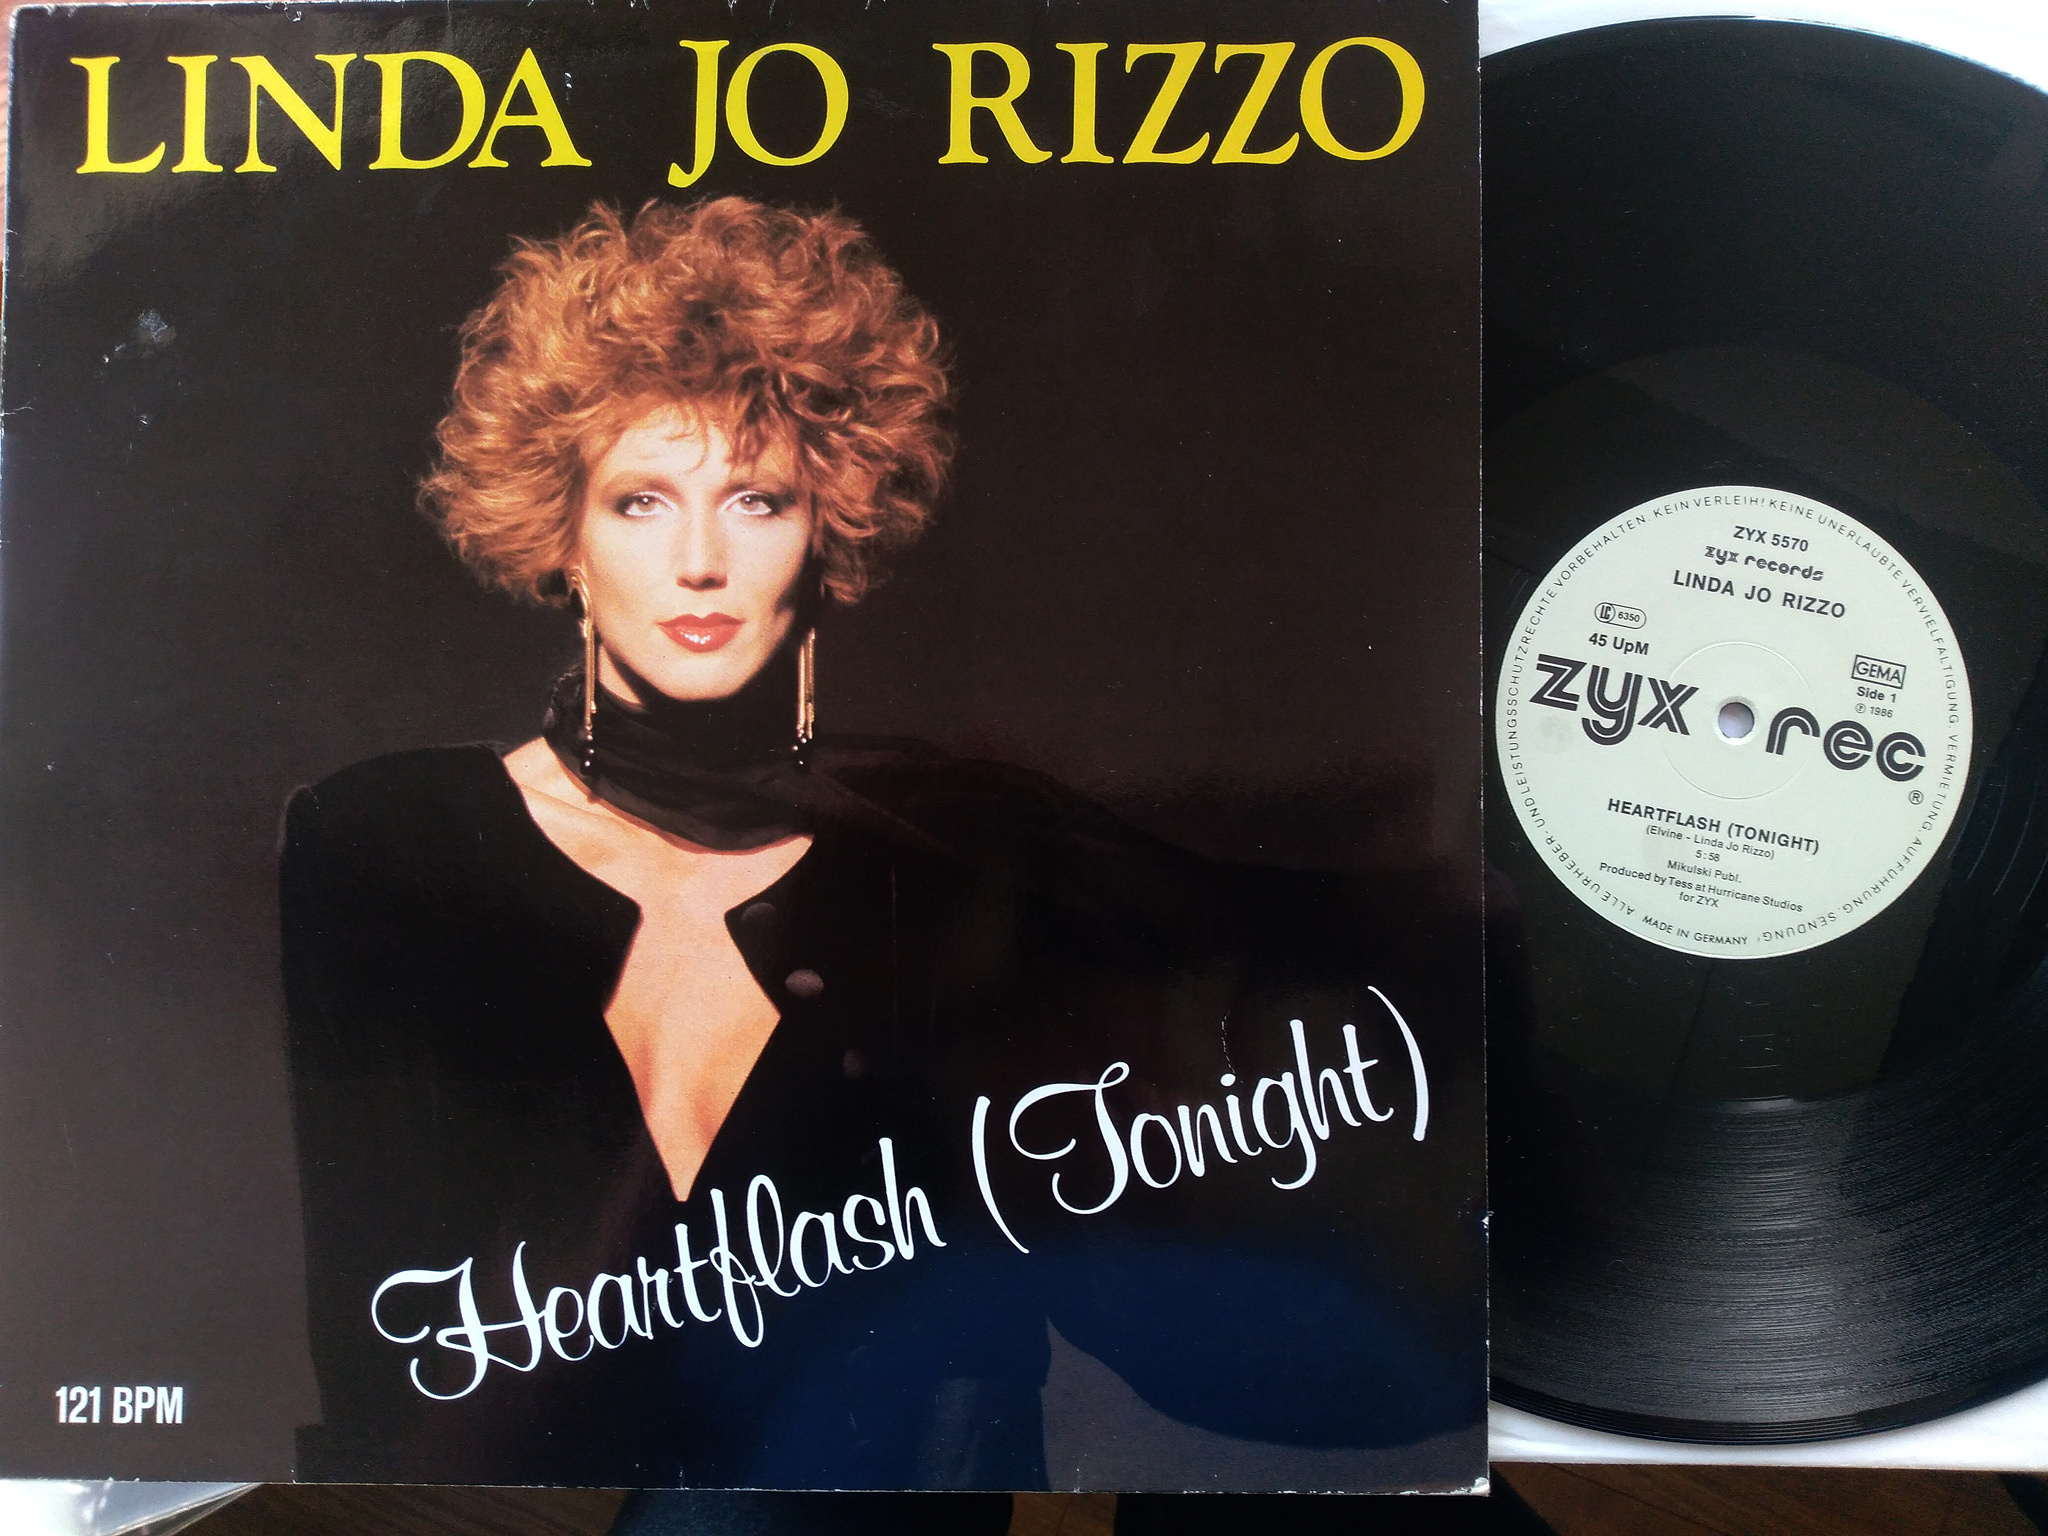 Linda Jo Rizzo - Heartflash (Tonight)